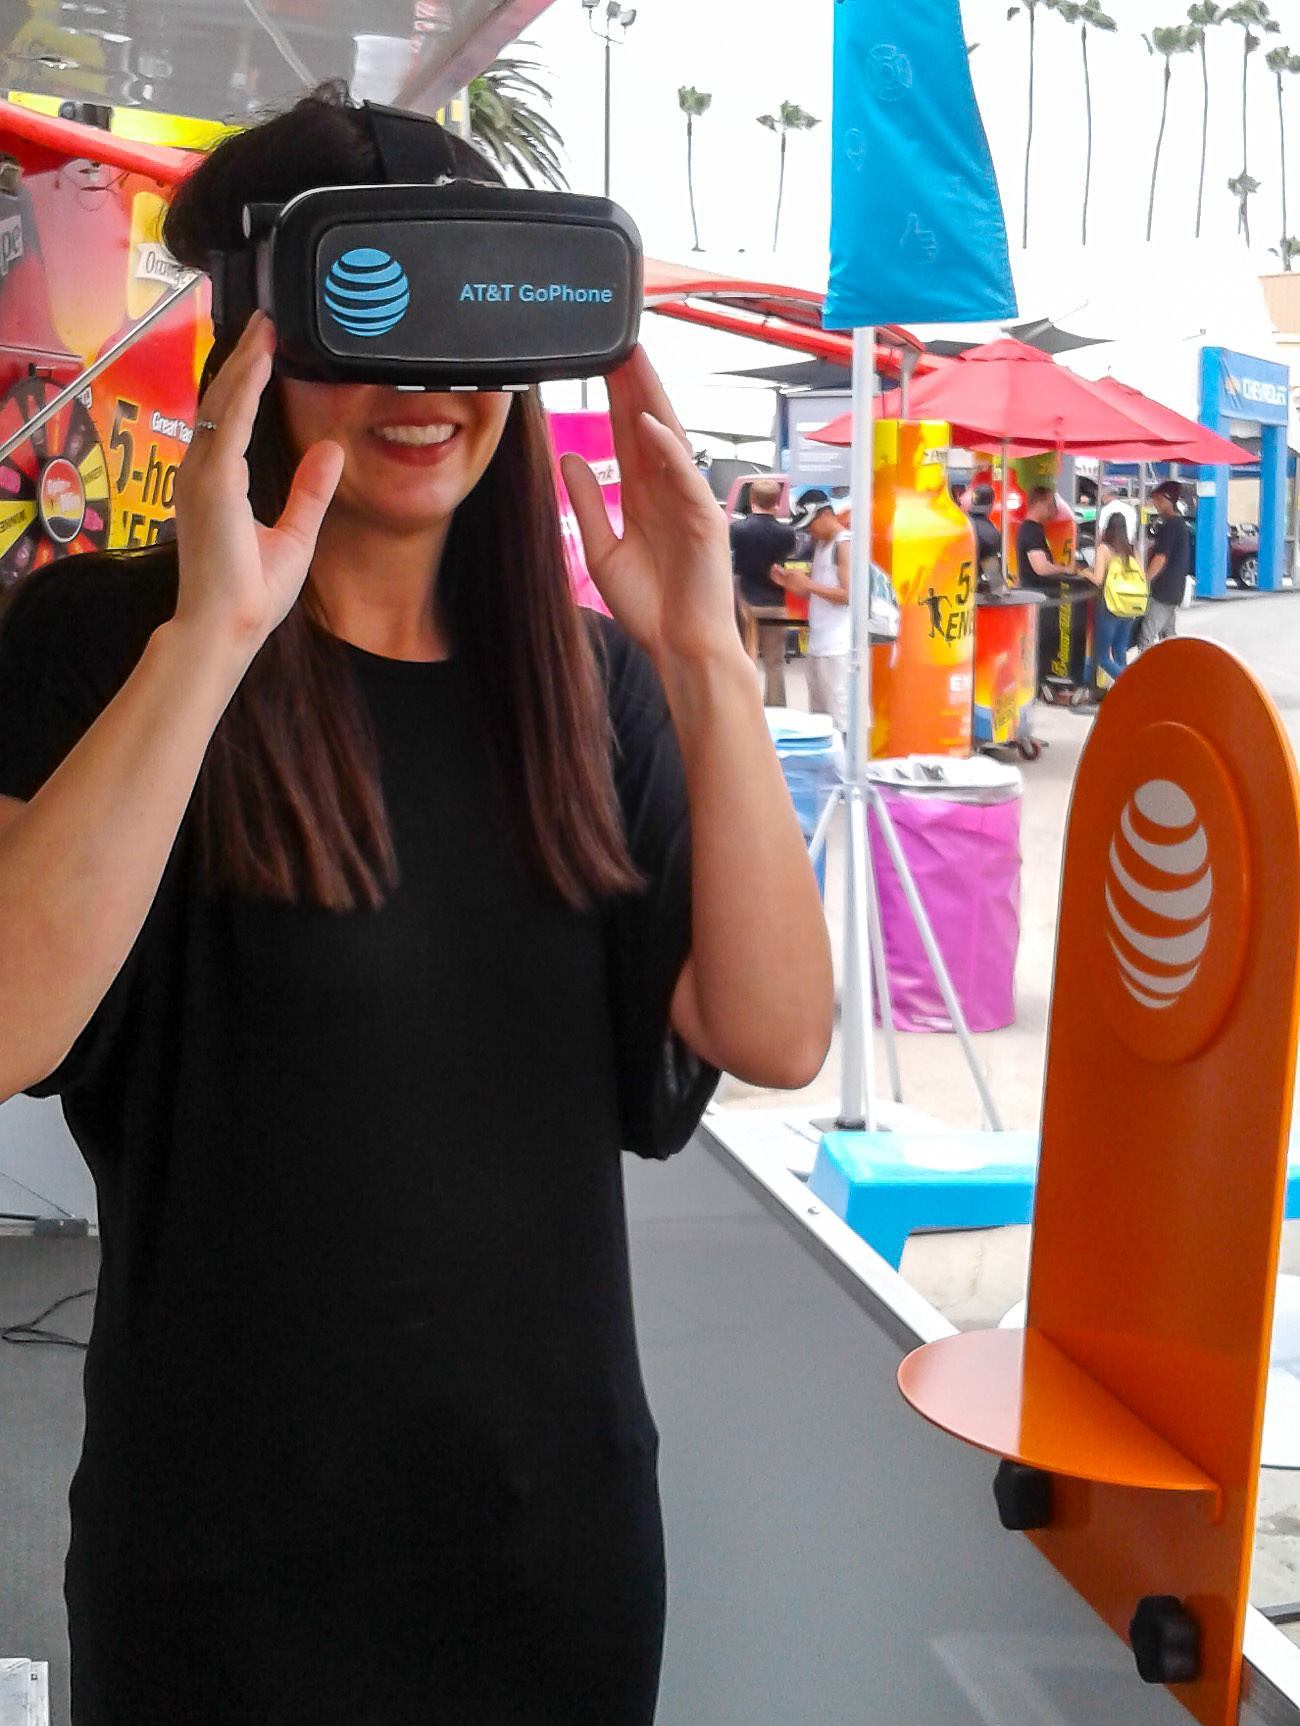 Virtual reality game played on an AT&T GoPhone